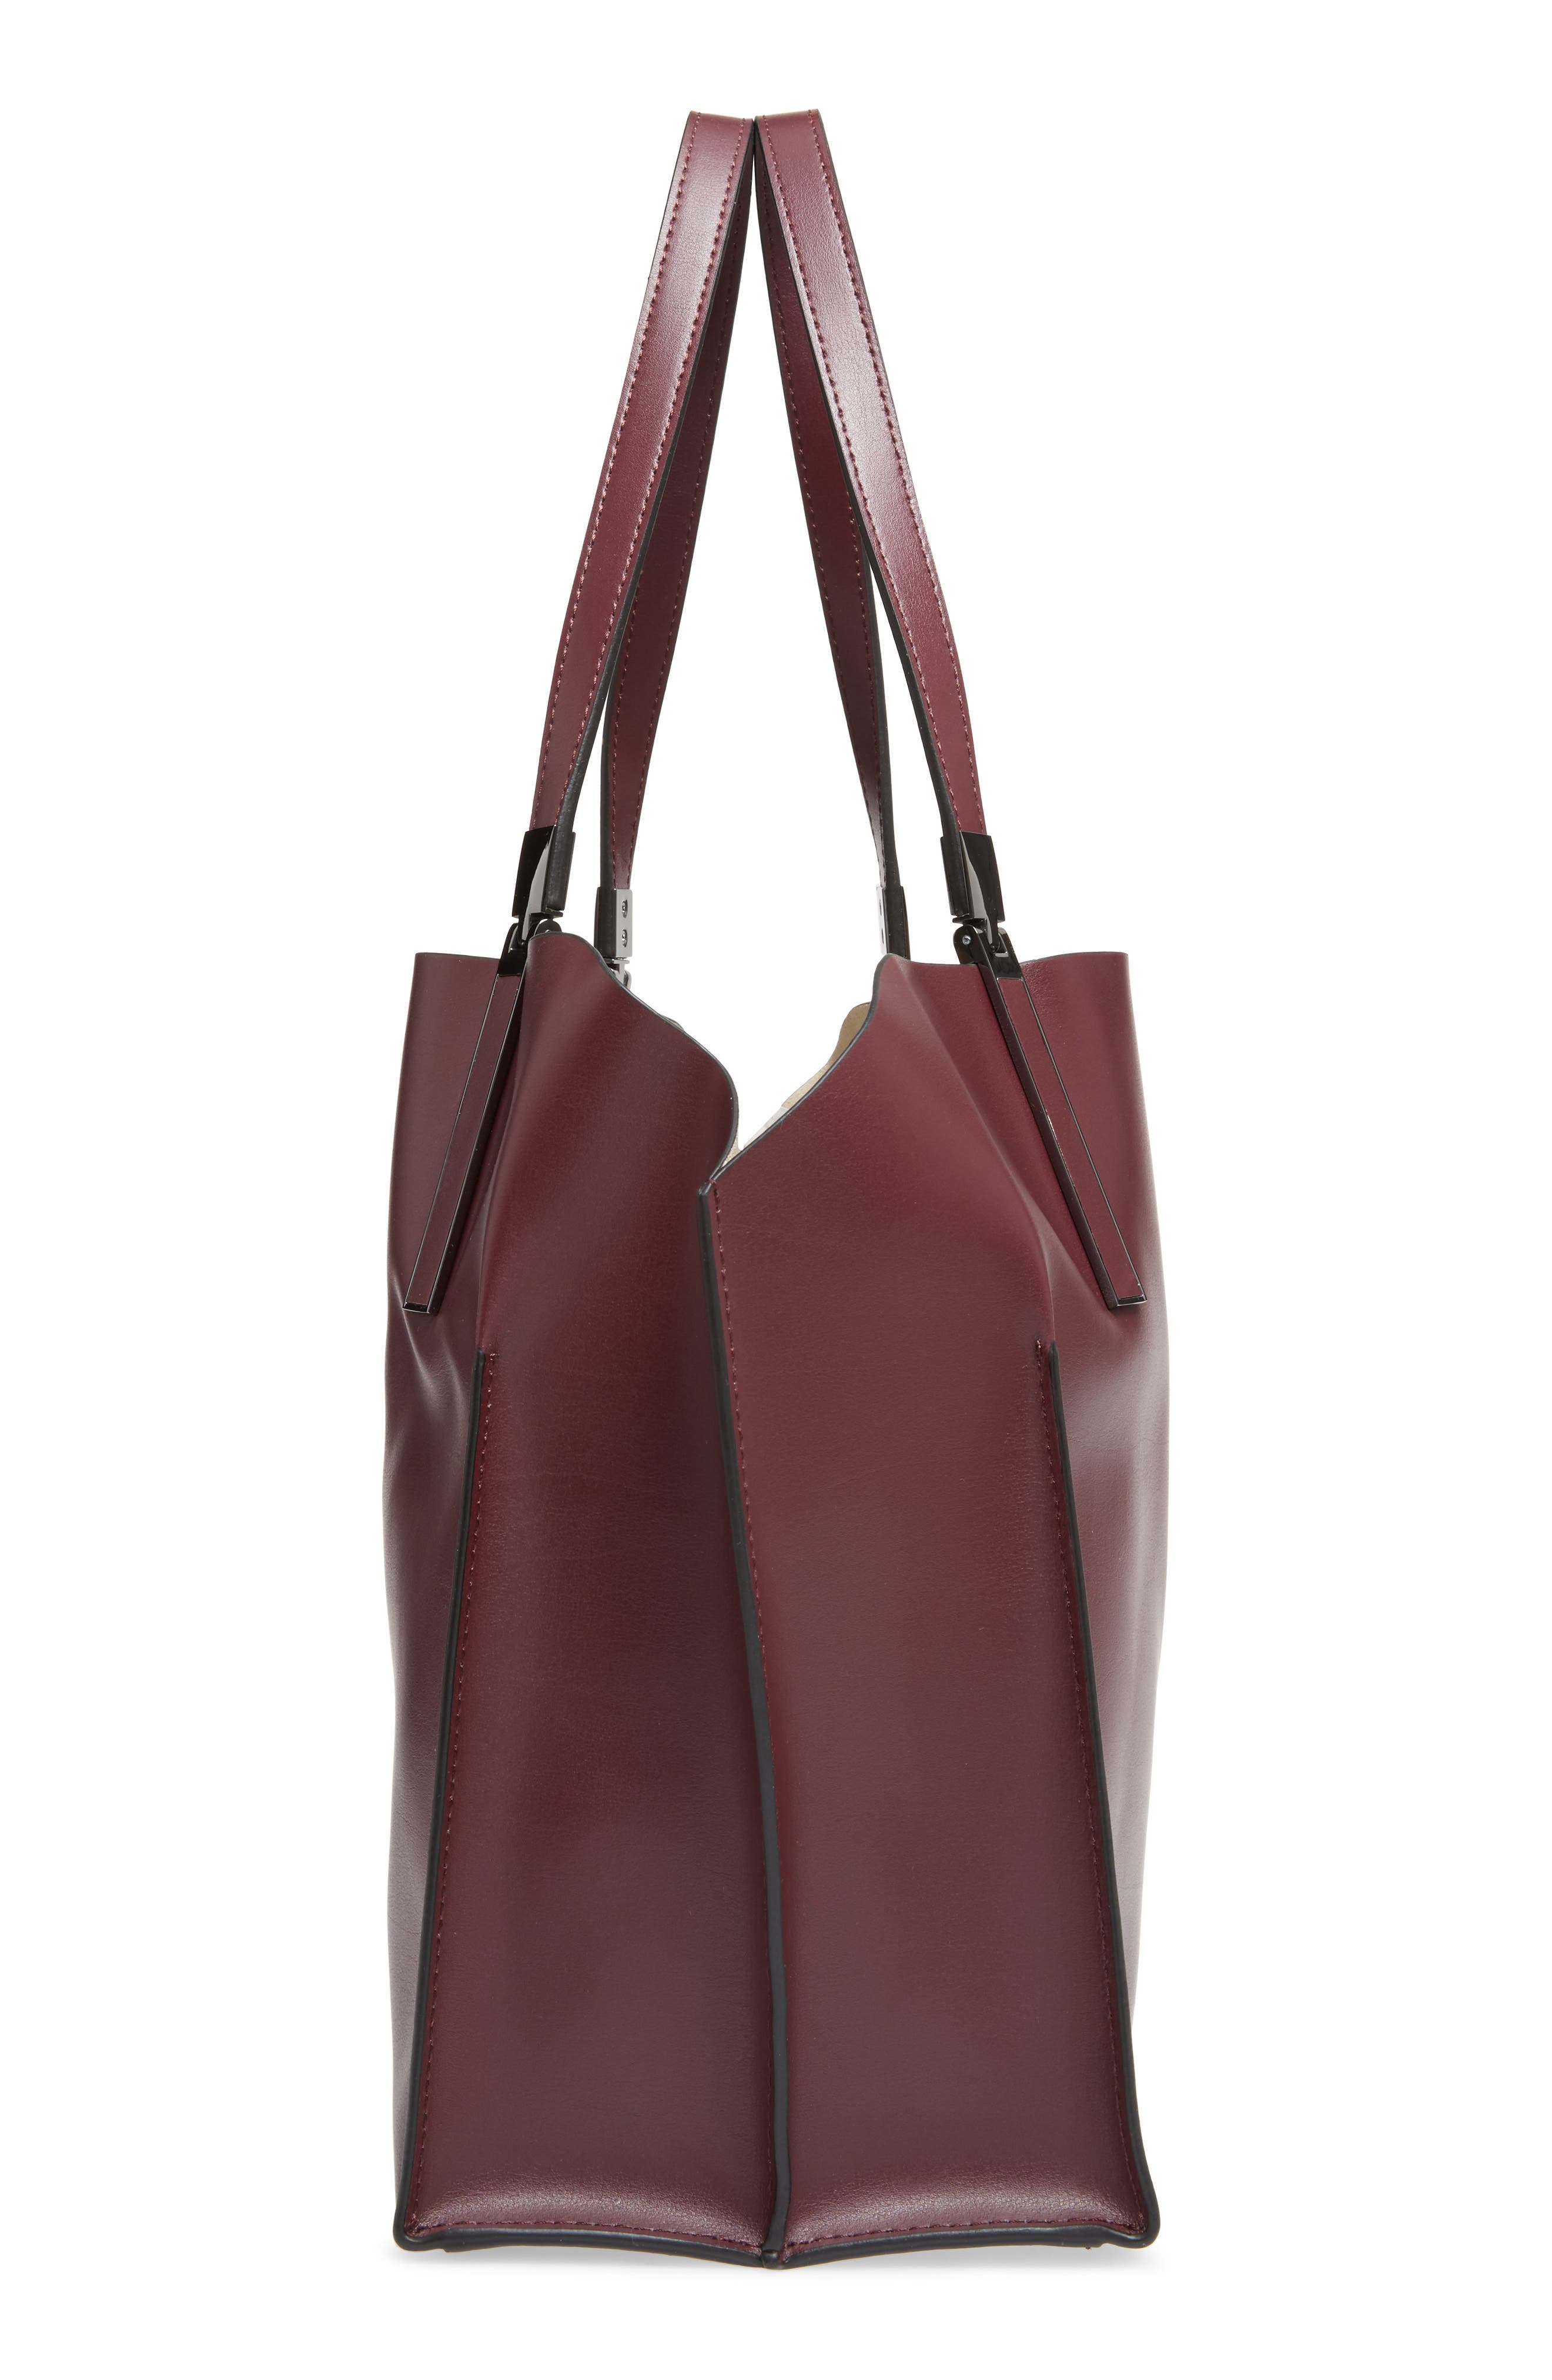 LODIS Silicon Valley Collection Under Lock & Key - Anita RFID East/West Leather Satchel,                             Alternate thumbnail 15, color,